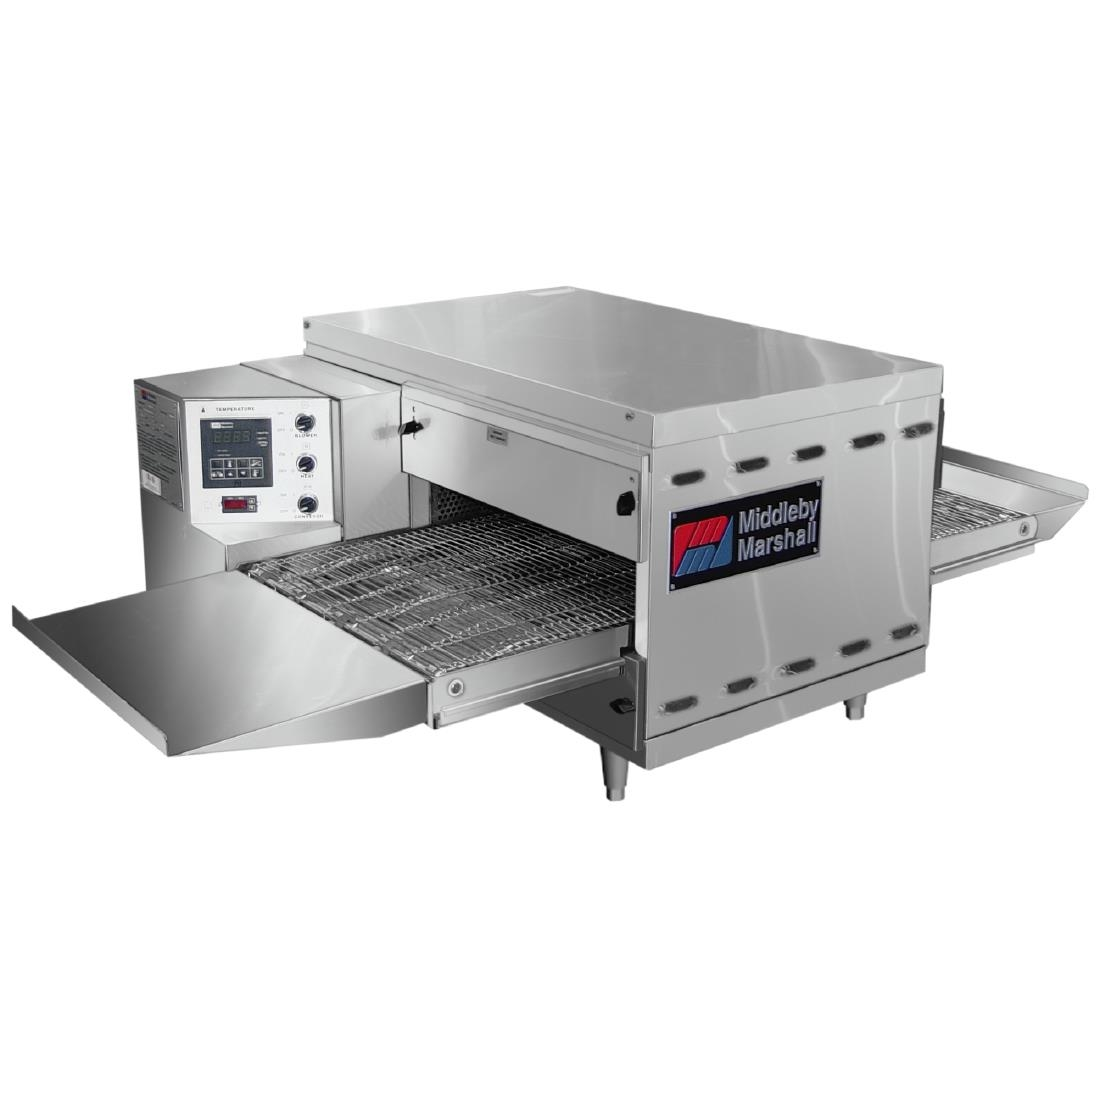 Middleby Marshall Electric Conveyor Oven S1820E